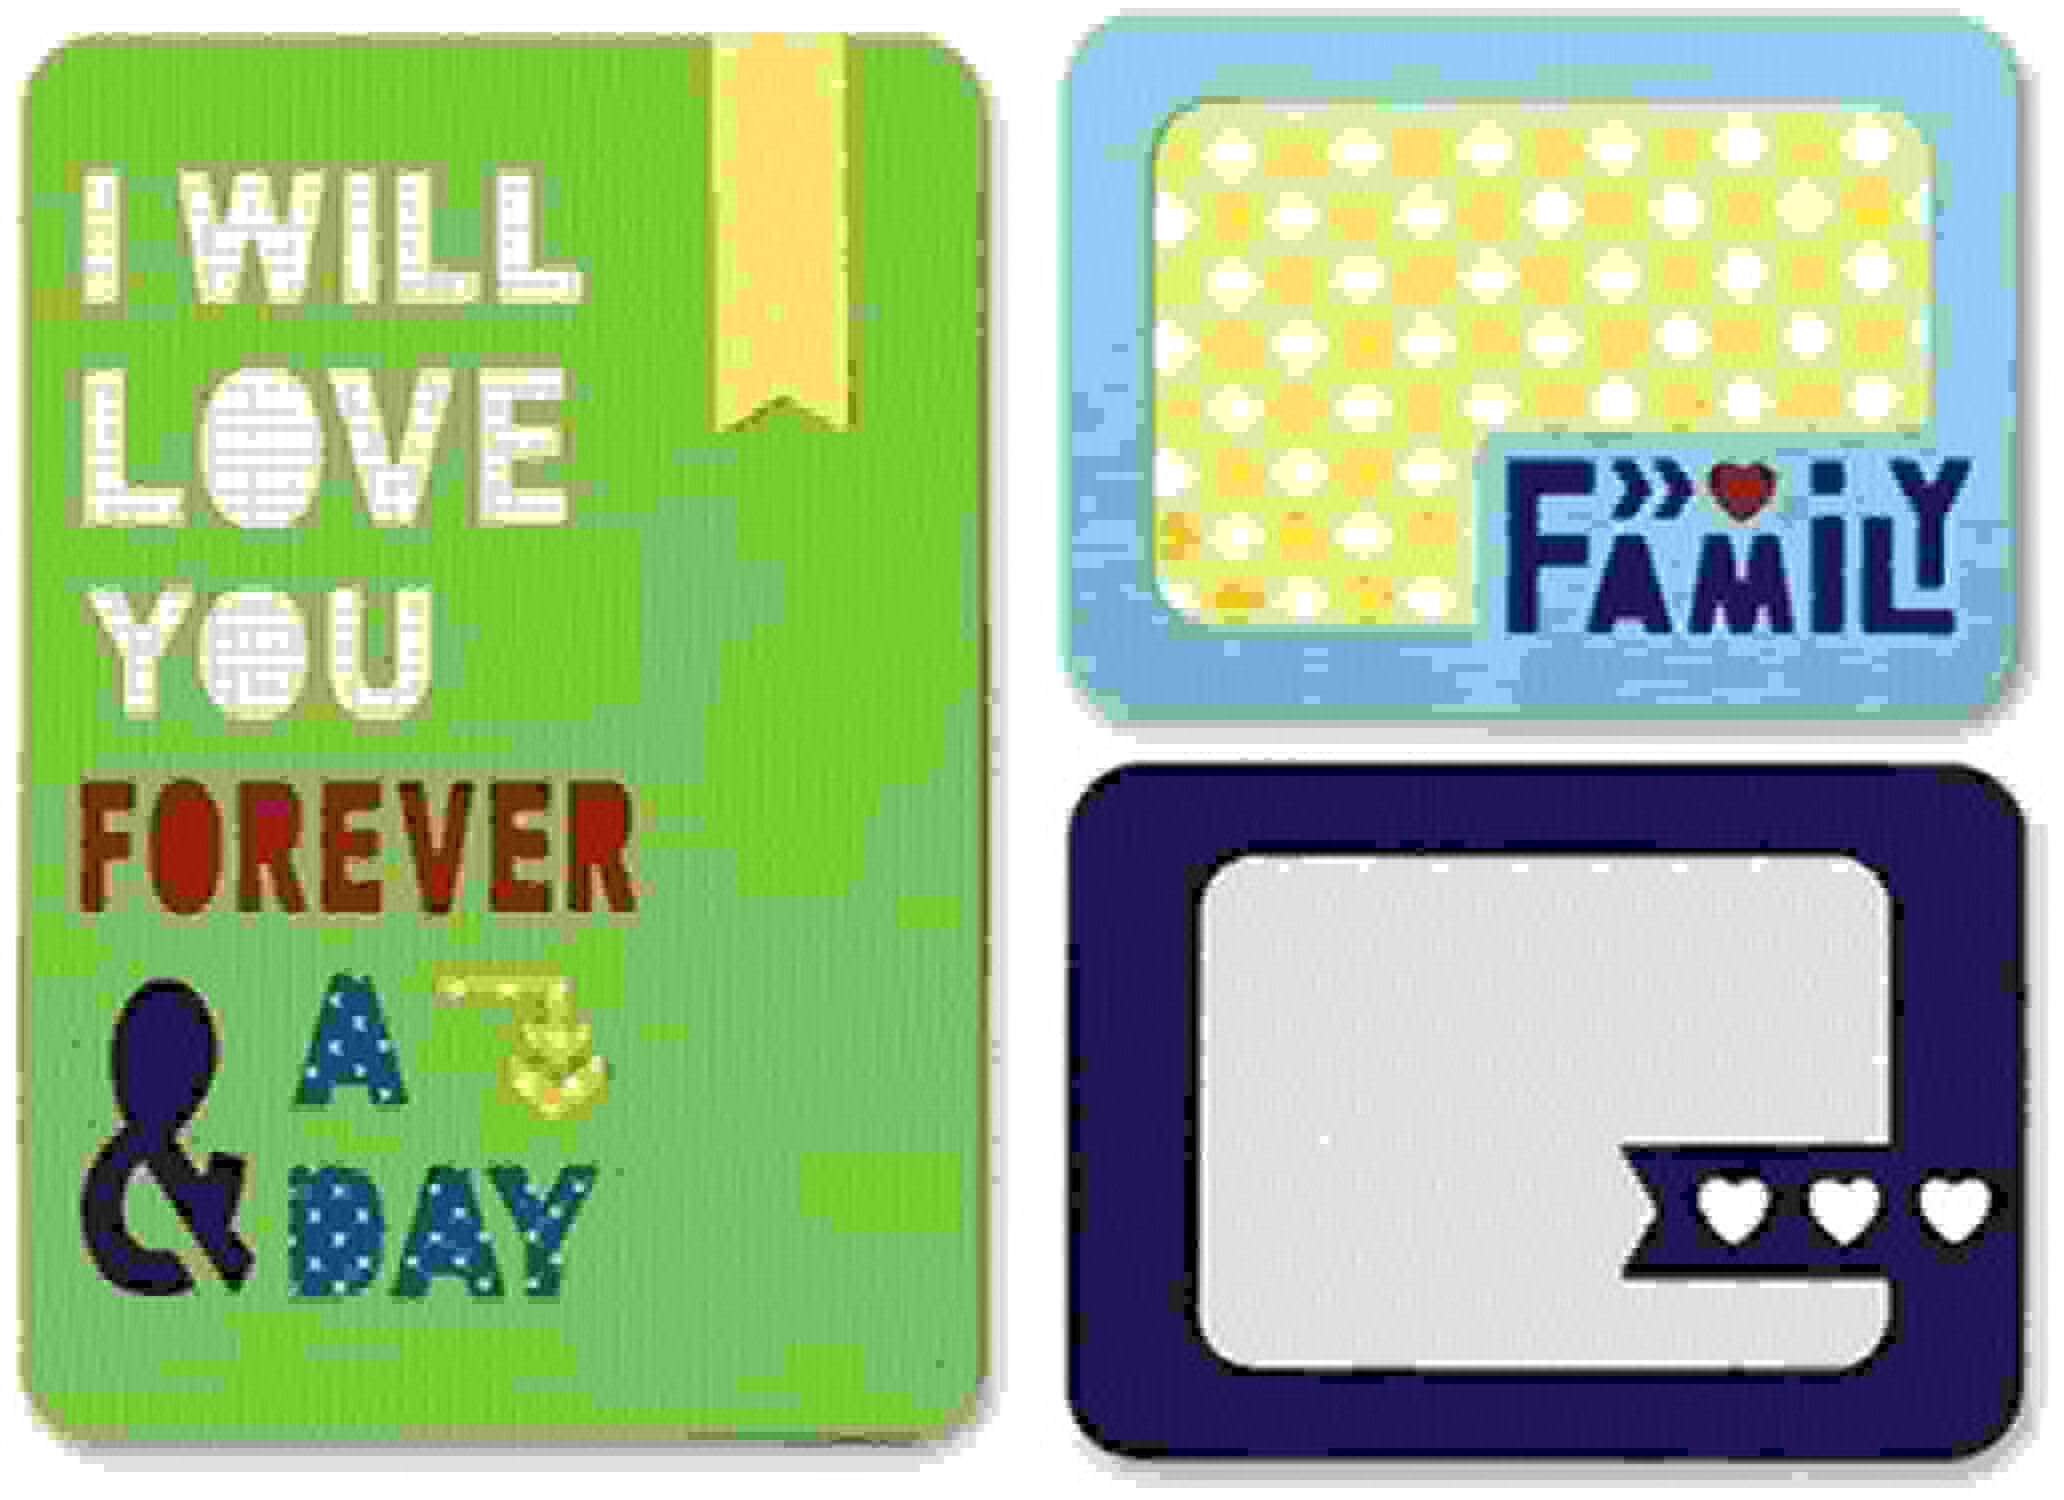 orden ahora disfrutar de gran descuento Sizzix Sizzix Sizzix Thinlits Die Forever and a Day by Rachael Bright, Set of 4 by Sizzix  ventas en linea